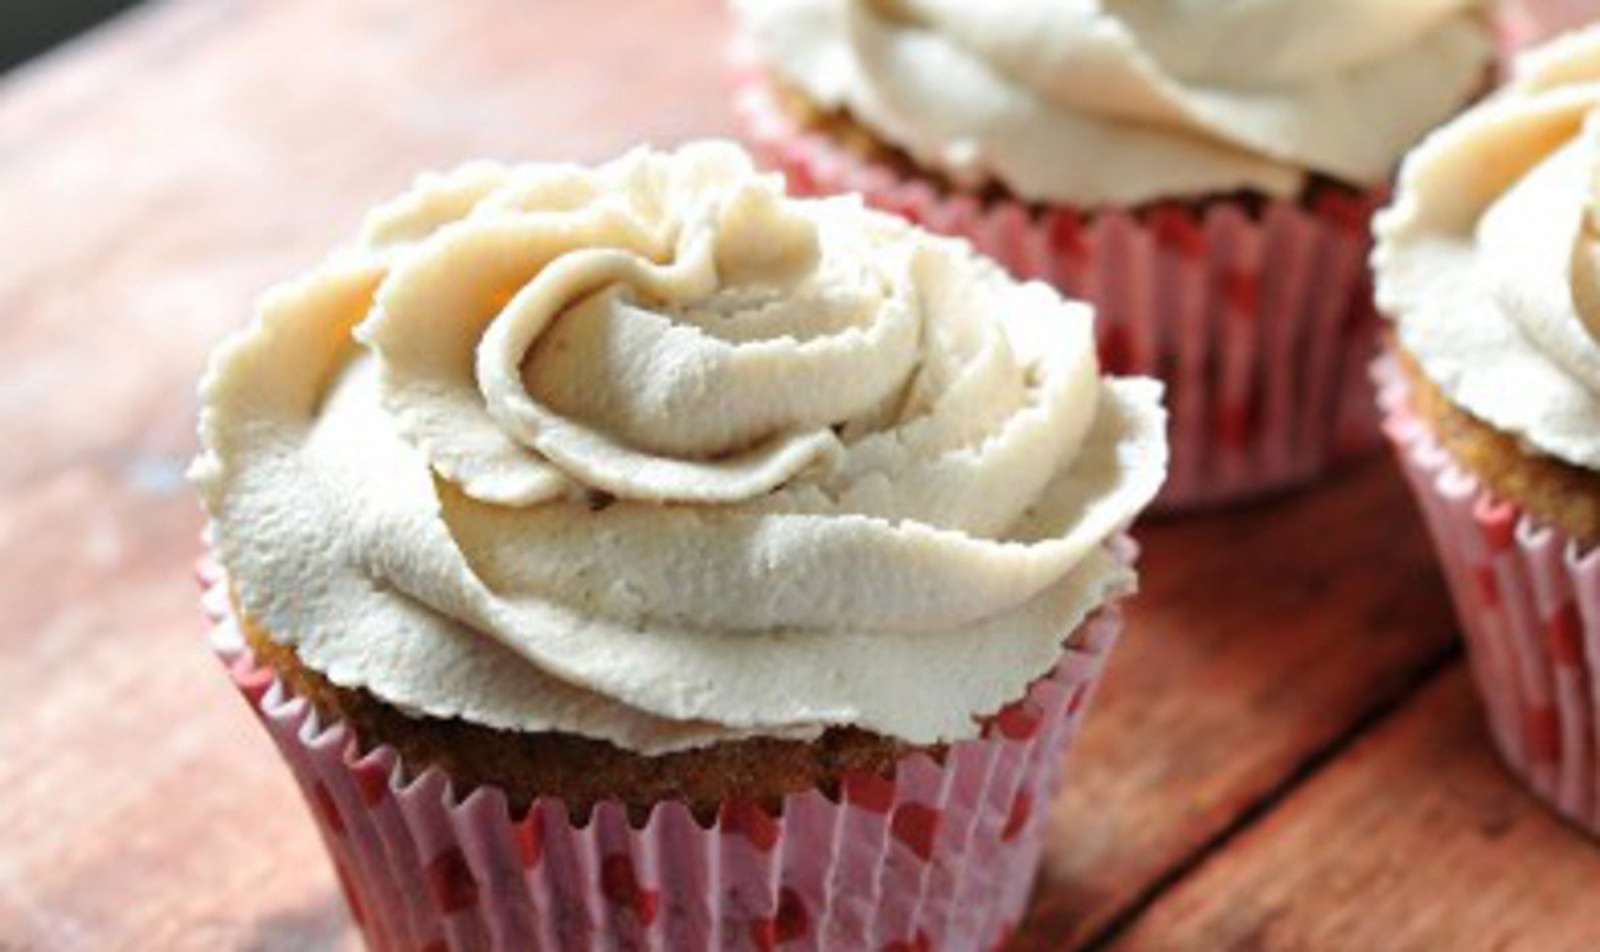 Celebrate Cupcake Lovers Day With These 10 Amazing Vegan Cupcakes!